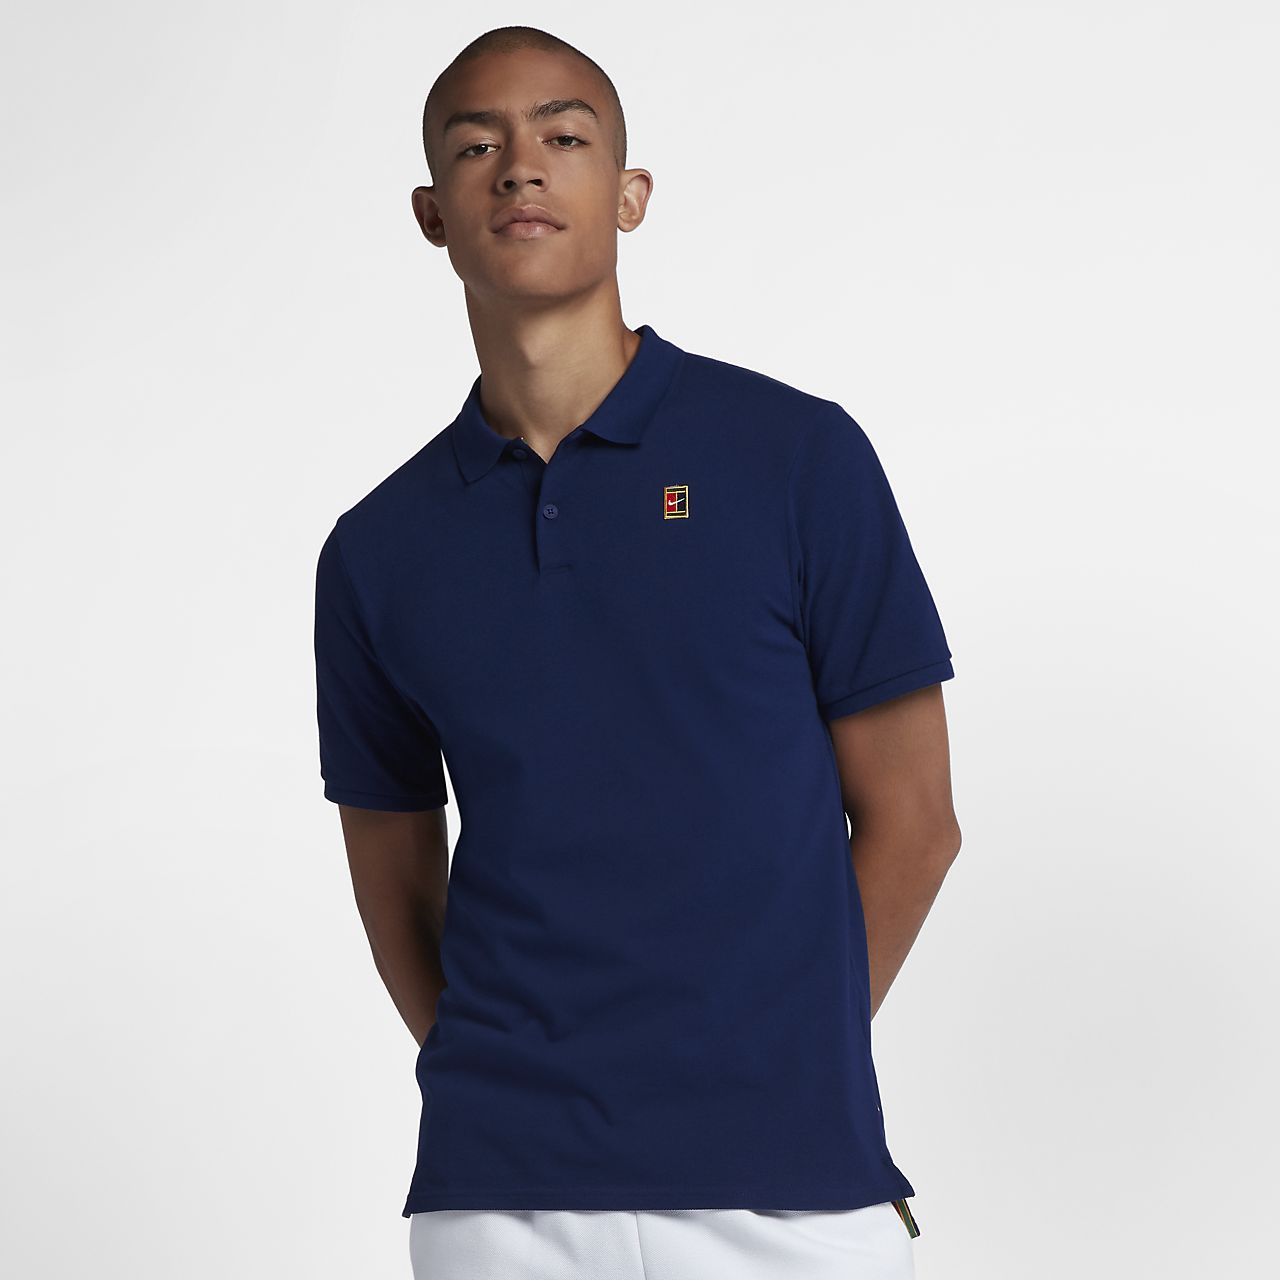 NikeCourt Men's Tennis Polo